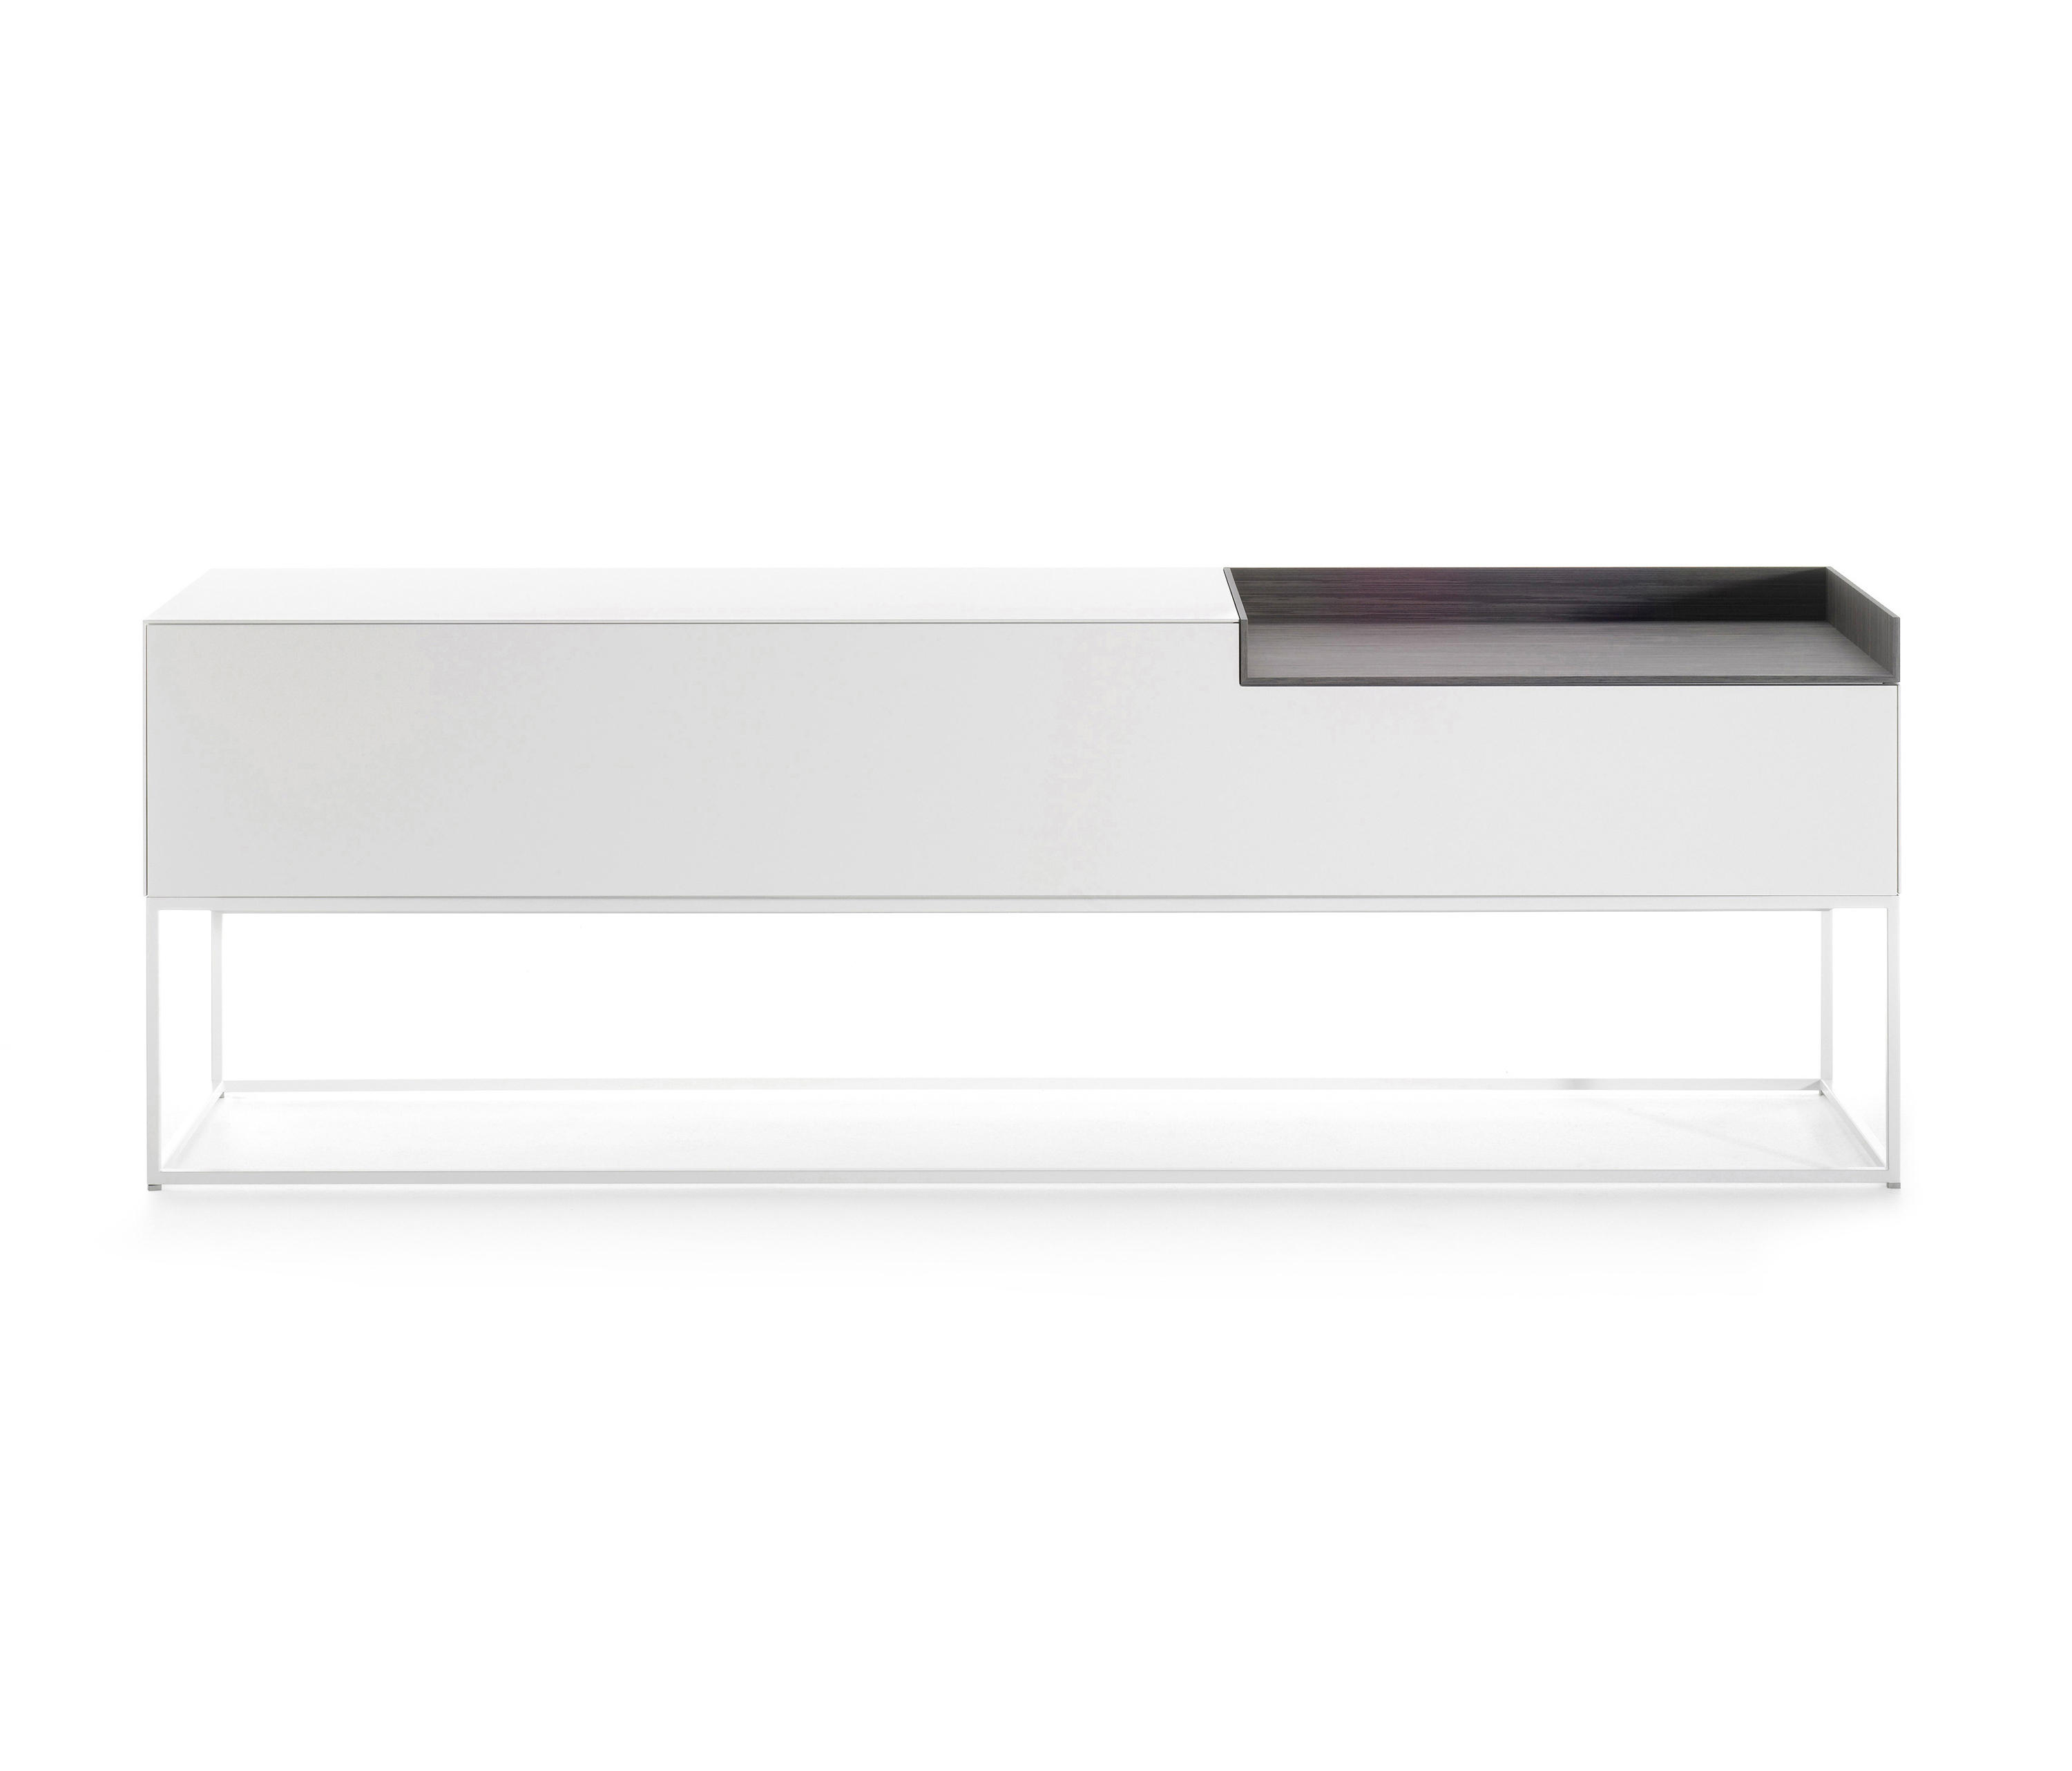 Offenes Sideboard Inmotion Sideboard Sideboards Kommoden Von Mdf Italia Architonic